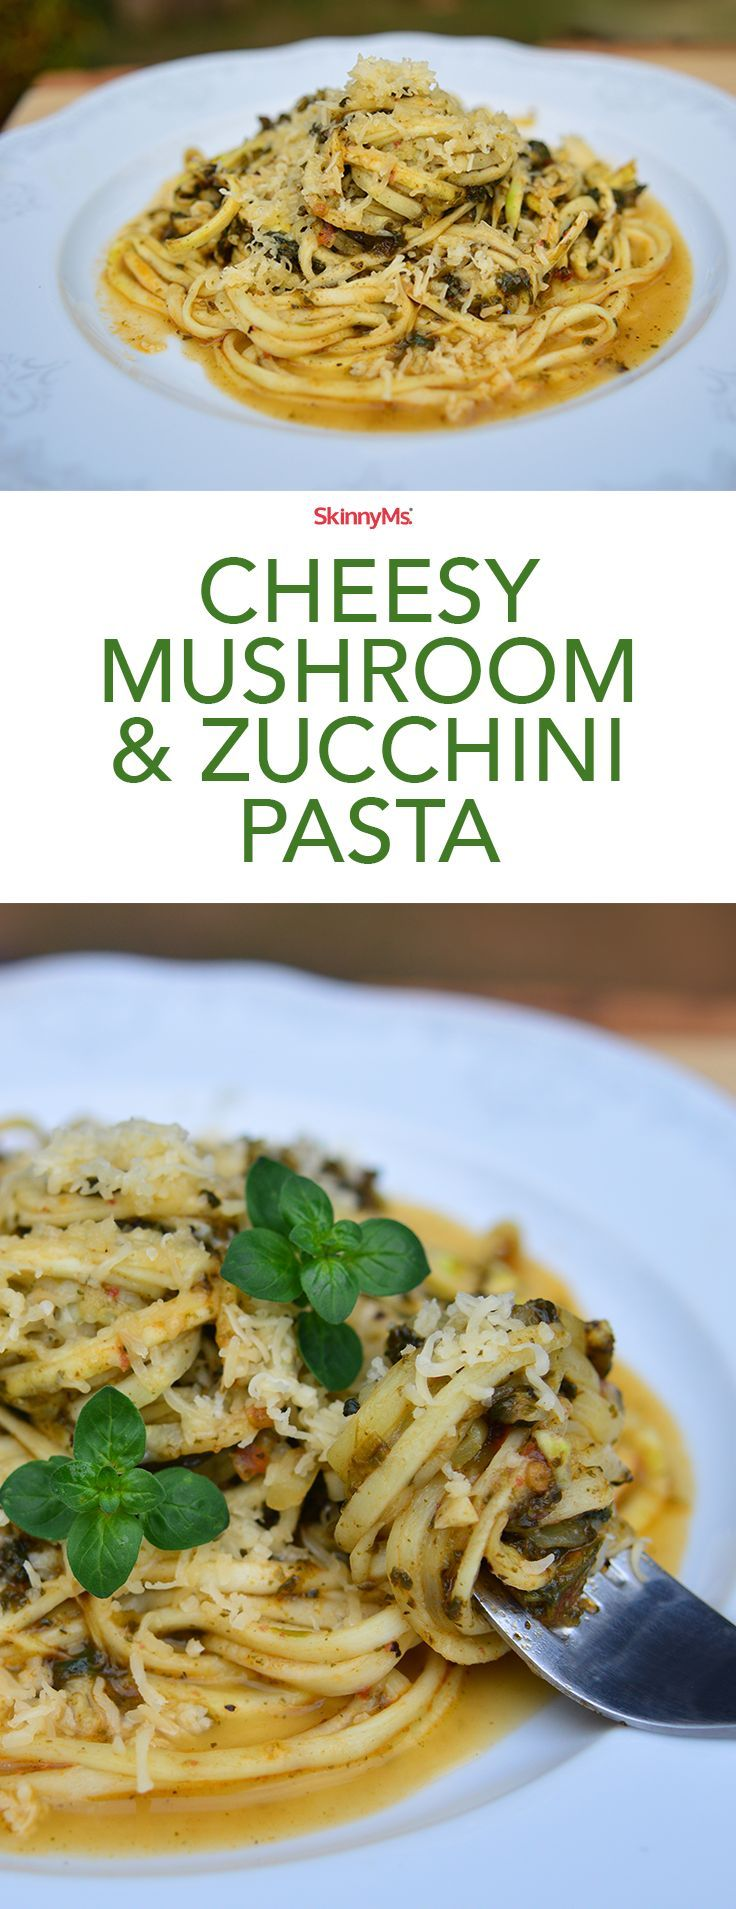 Indulge in pasta without worrying about your waistline.  This Cheesy Mushroom & Zucchini Pasta is only 122 calories and 5 SmartPoints per serving! #pasta #cleaneating